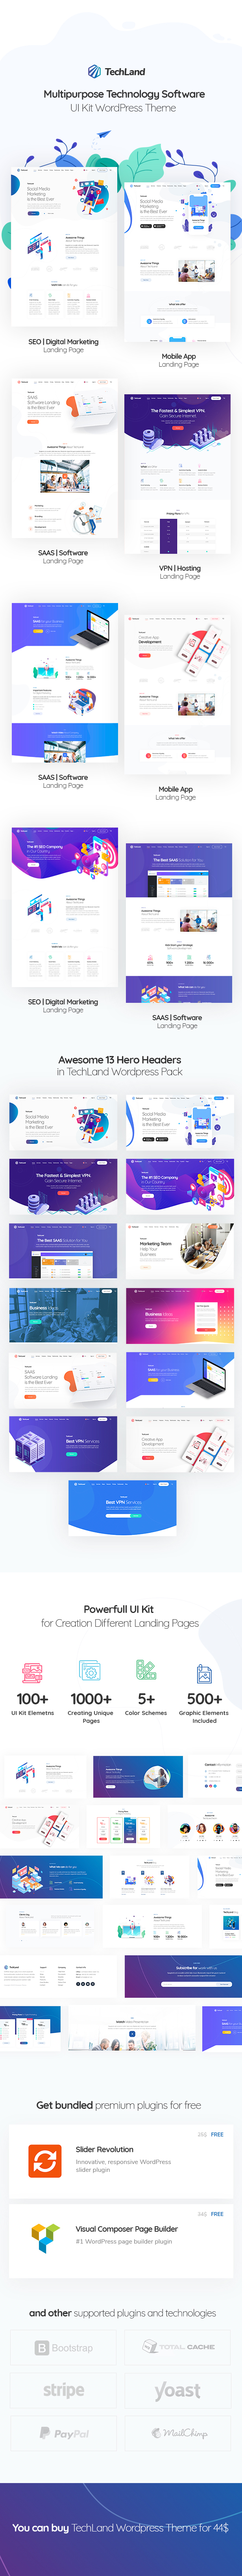 Techland - WordPress Saas Startup Theme - 1